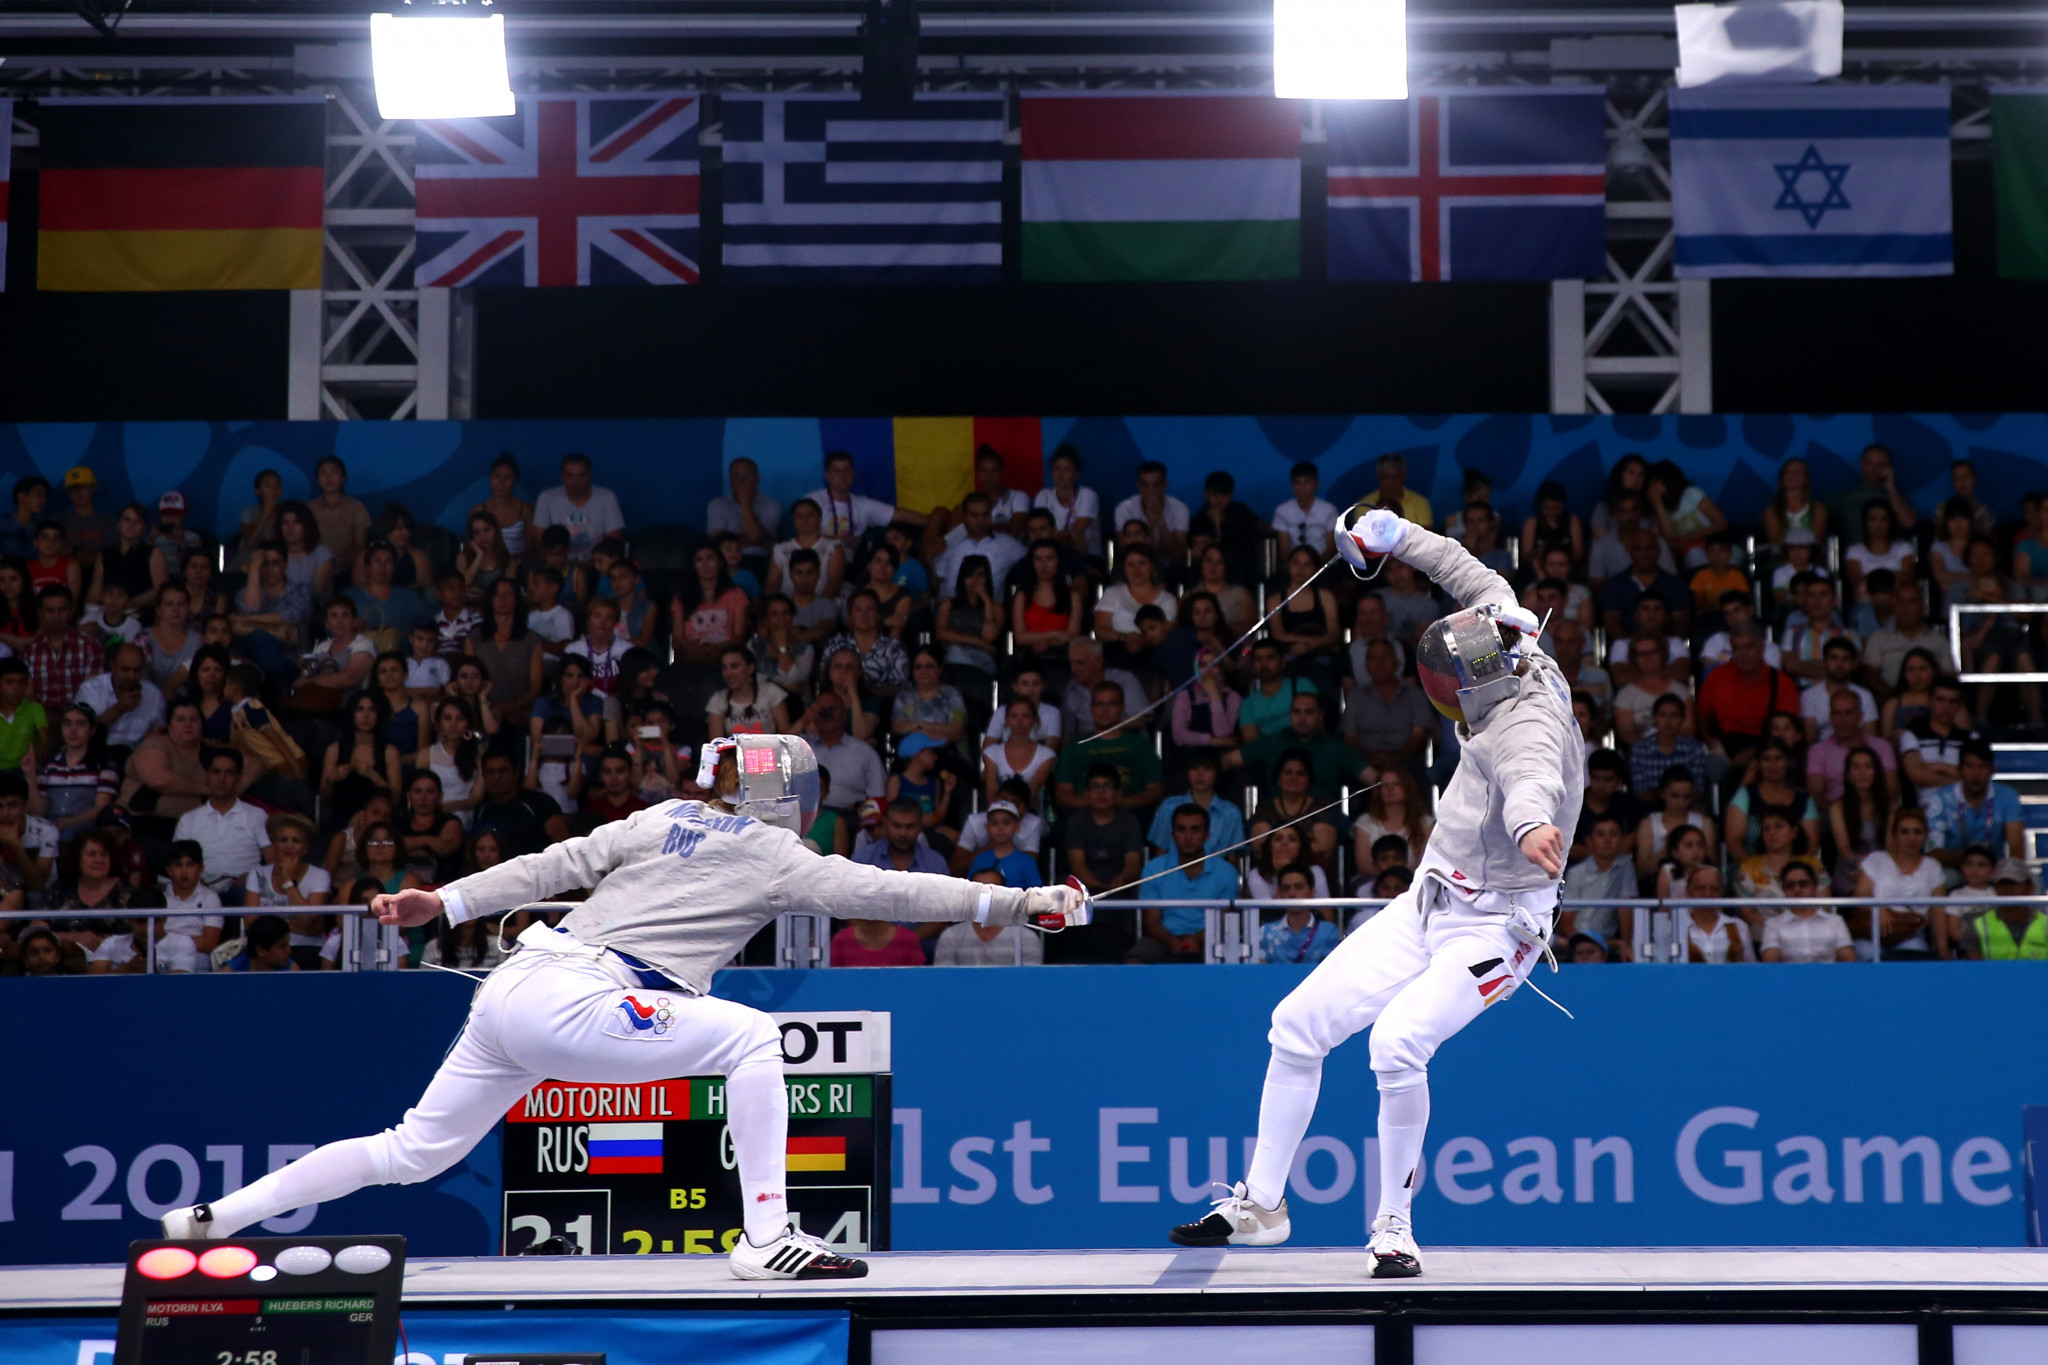 Fencing is set to return to the European Games programme after its omission during the second edition in Minsk in 2019 ©Getty Images